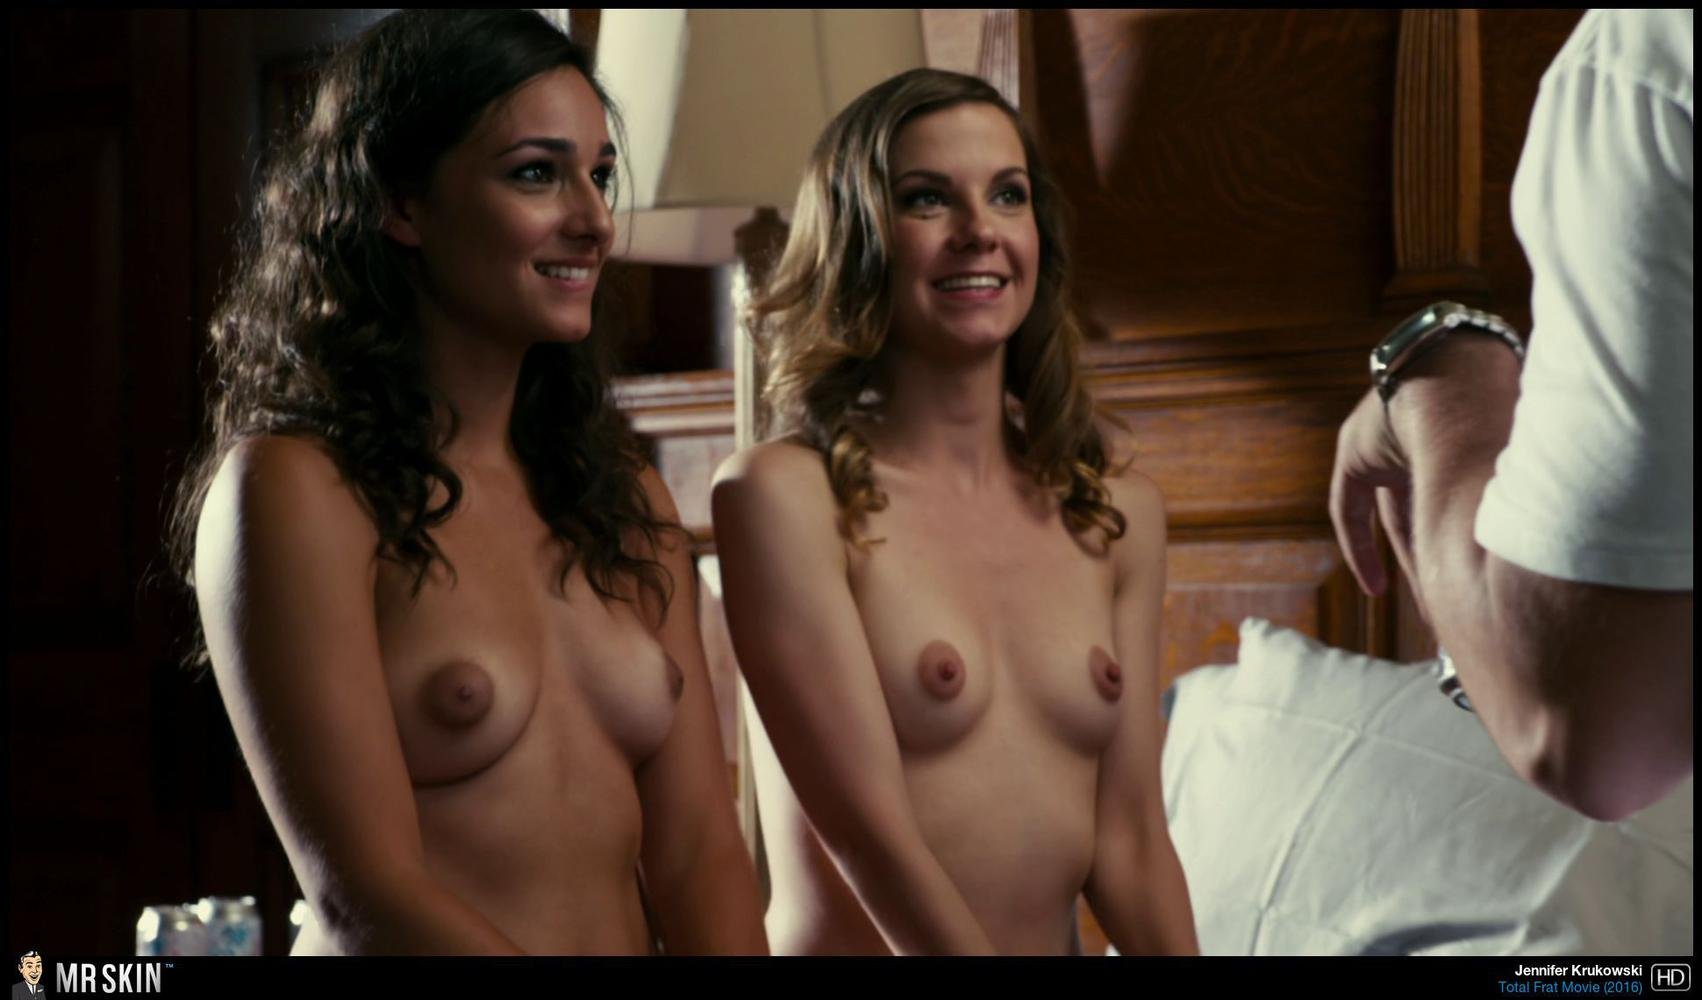 Nudes of girls season 2 shiri appleby lena dunham and co